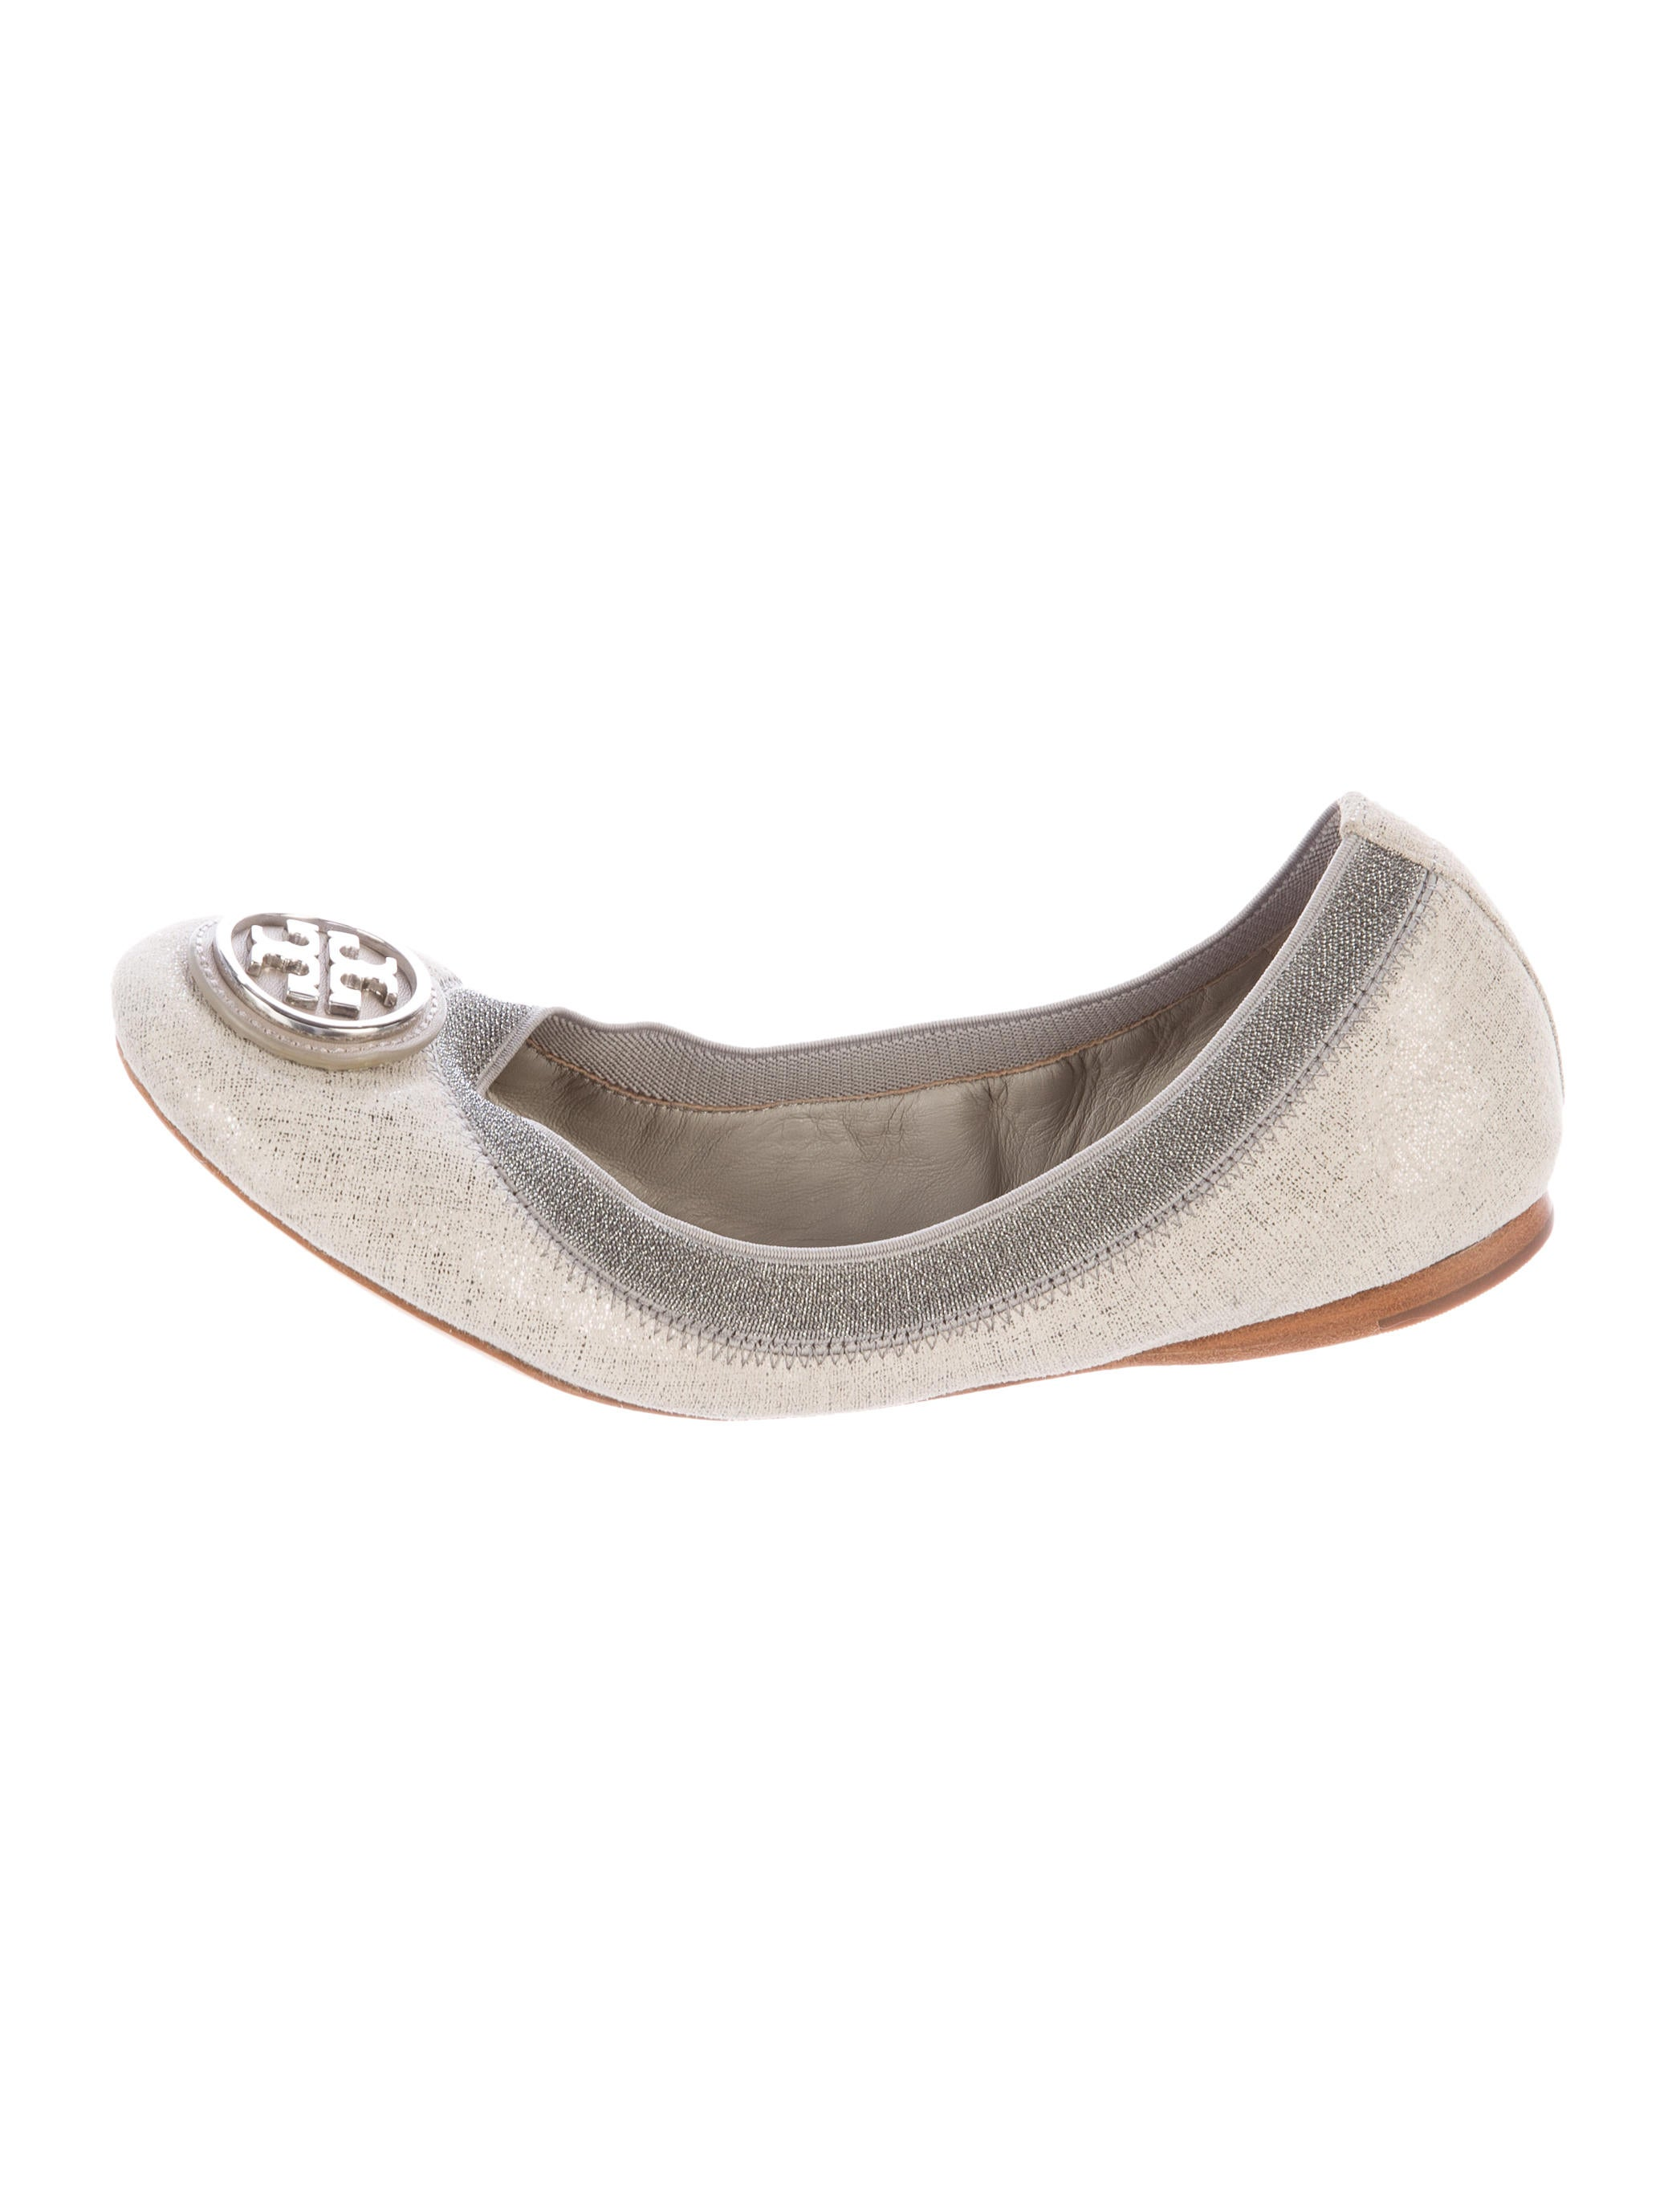 burch metallic canvas flats shoes wto91490 the